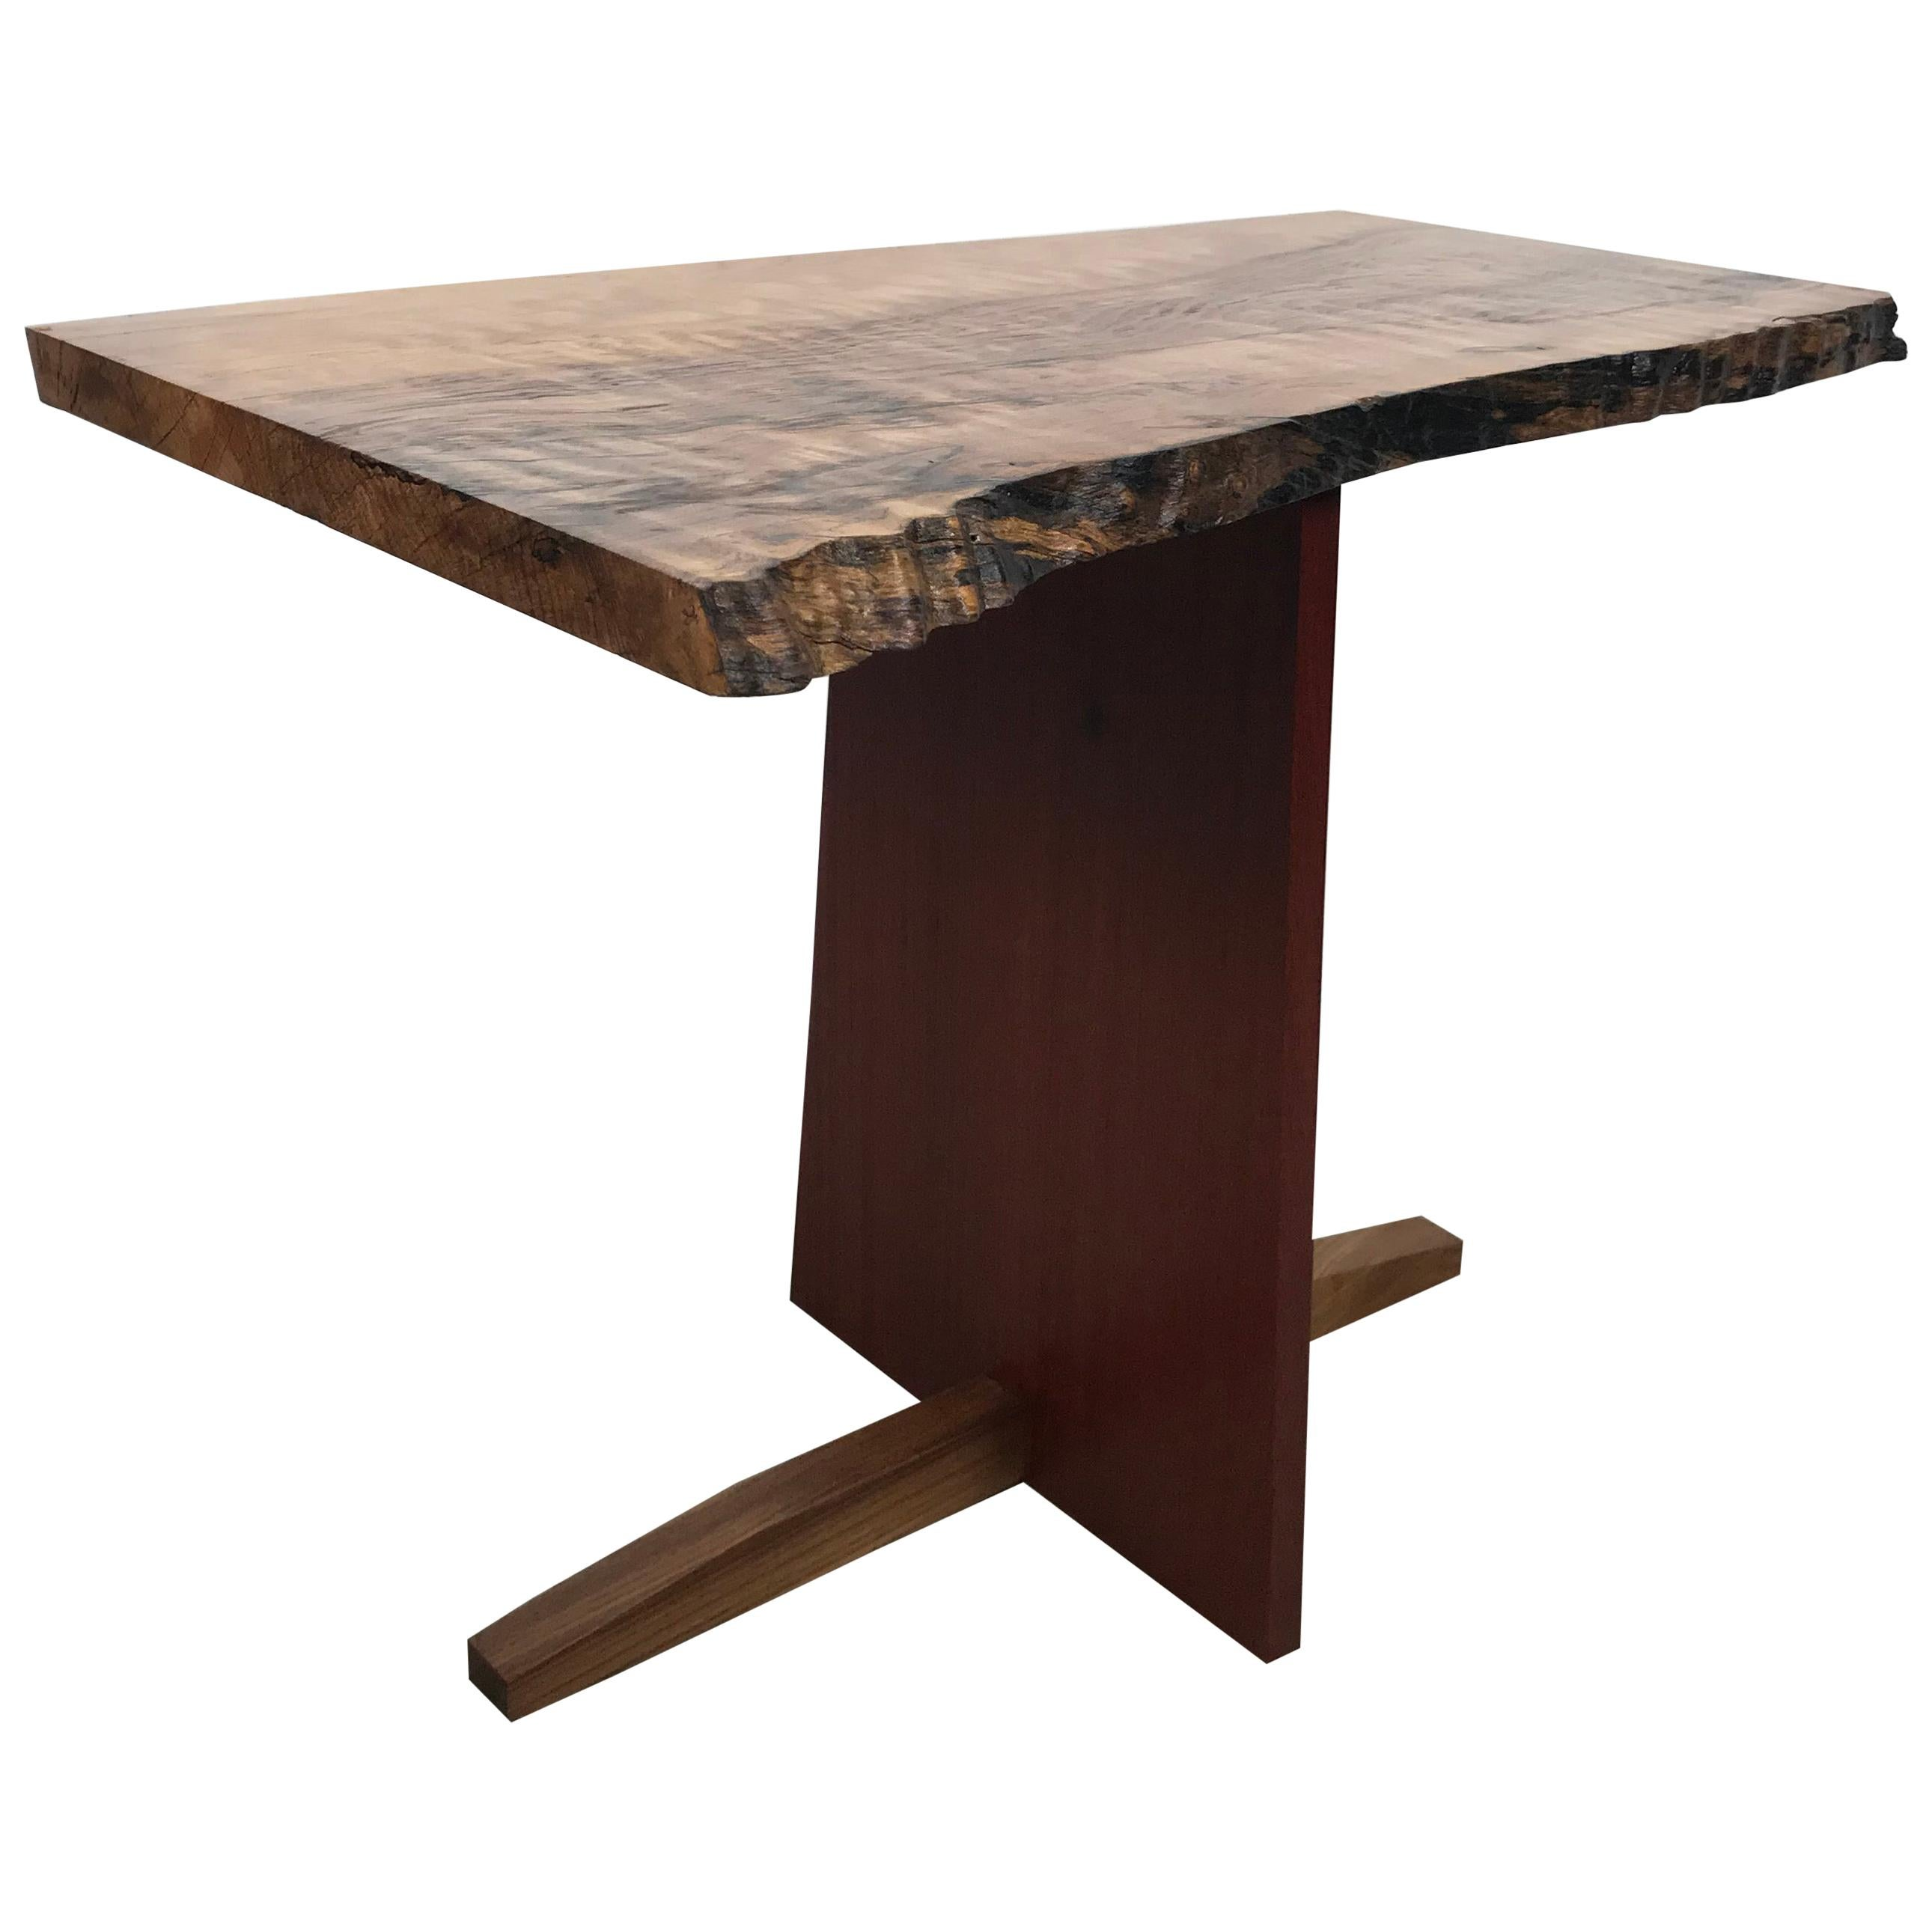 Modernist Free Edge Table in the Manner of George Nakashima by Alex Phillips